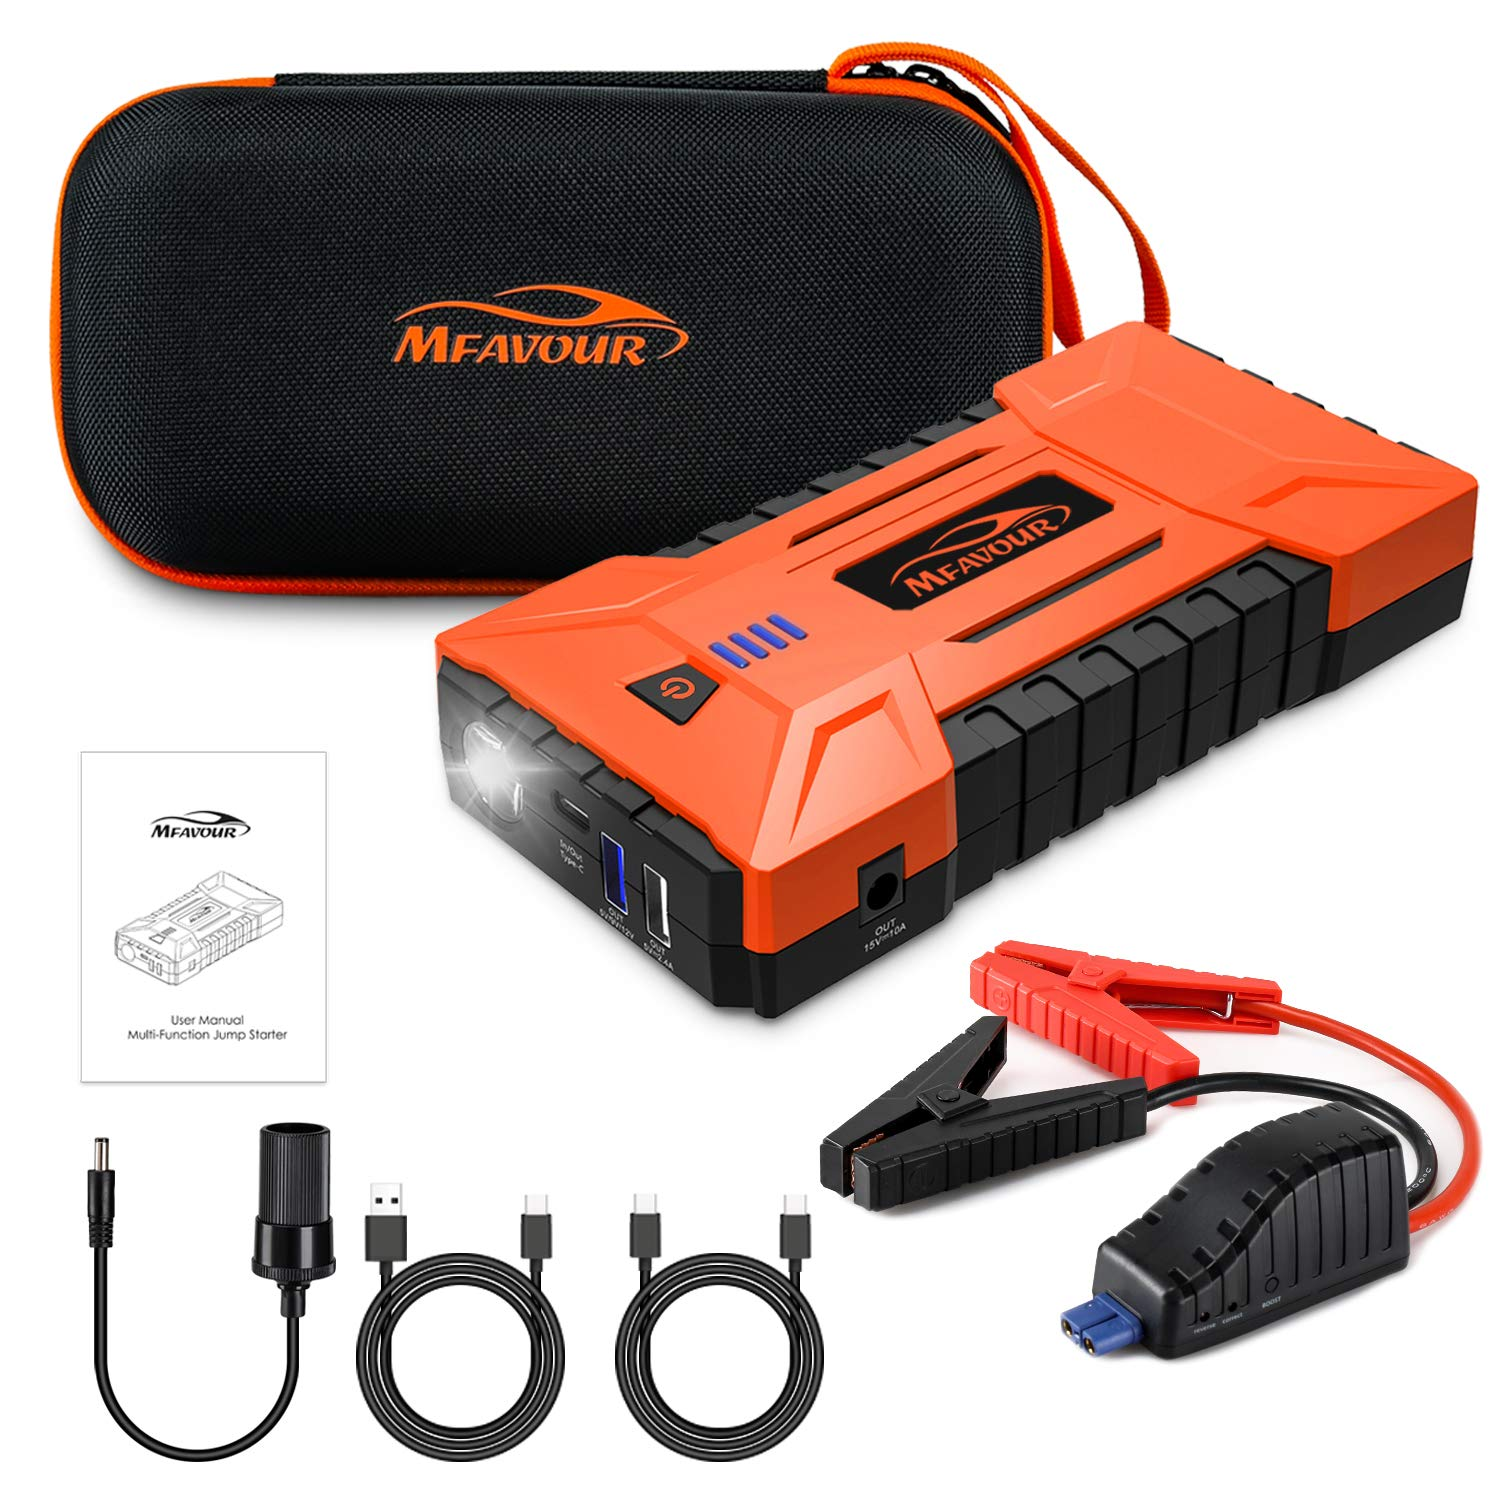 motorcycles mfavour Car Jump Starter 1200A Peak 16000mAh Portable Battery Booster with with dual USB outputs DC output and LED flashlight for cars trucks boats